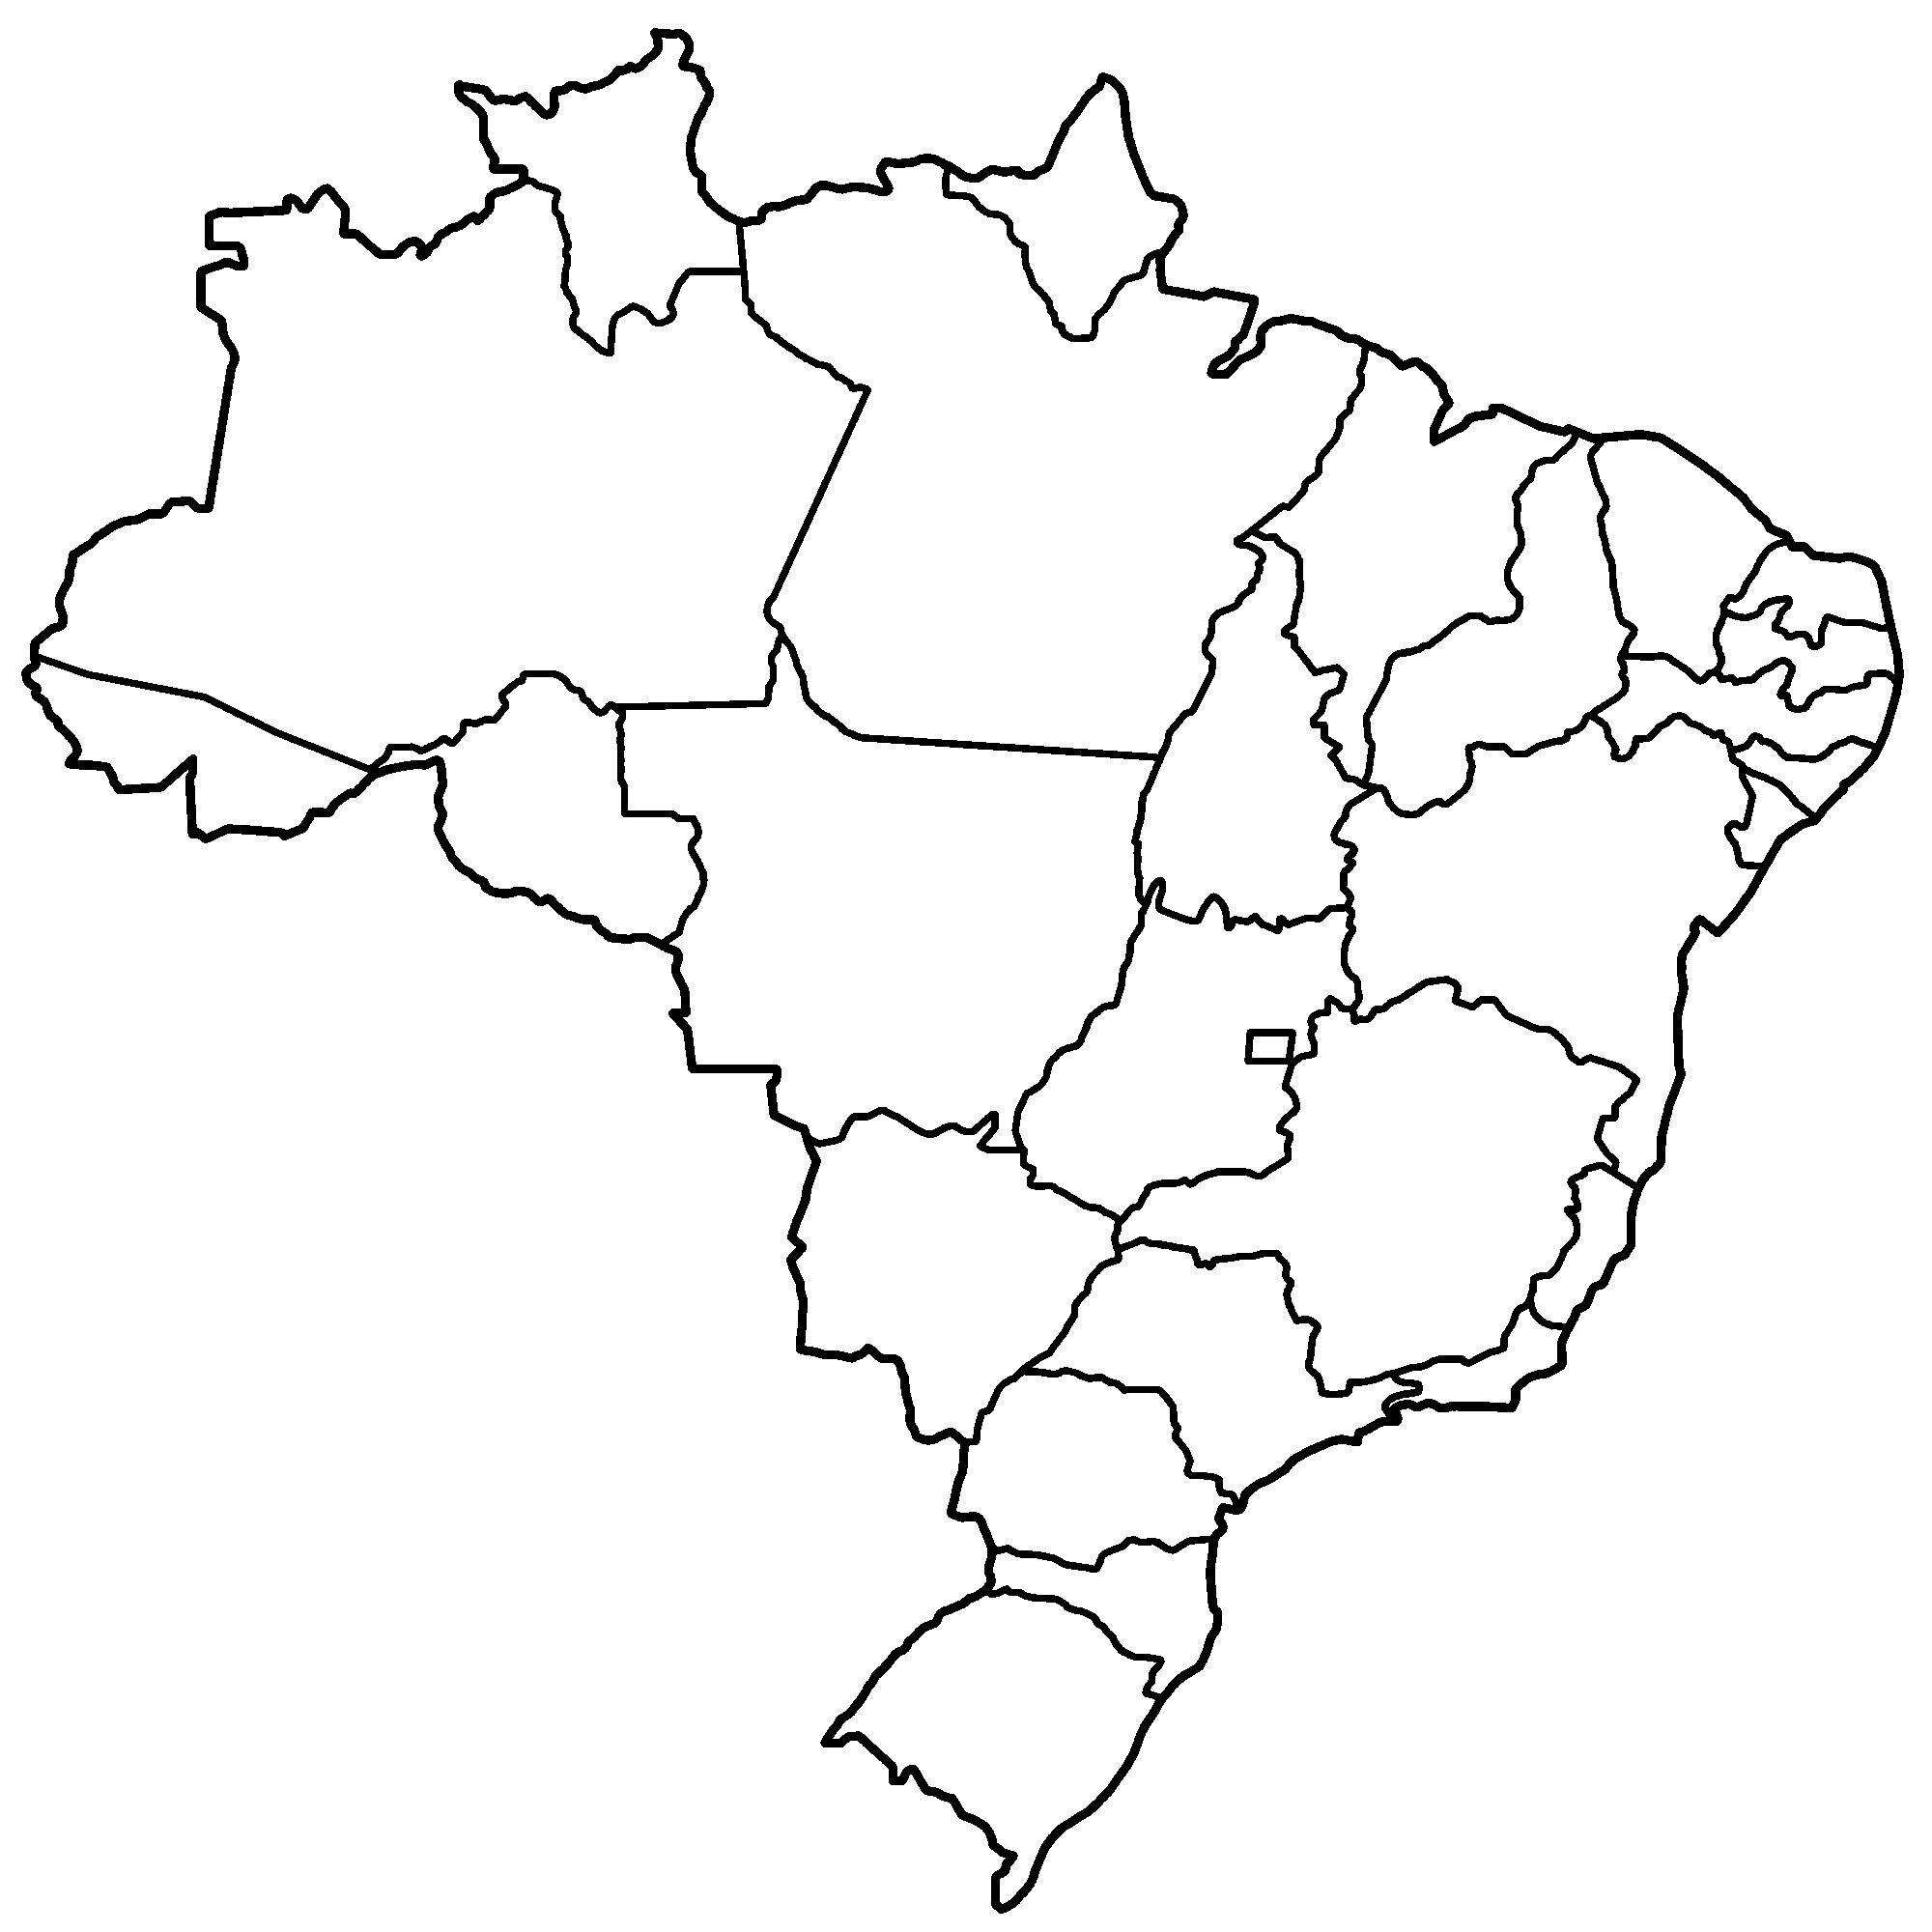 Printable Map Of Brazil - Brazil map